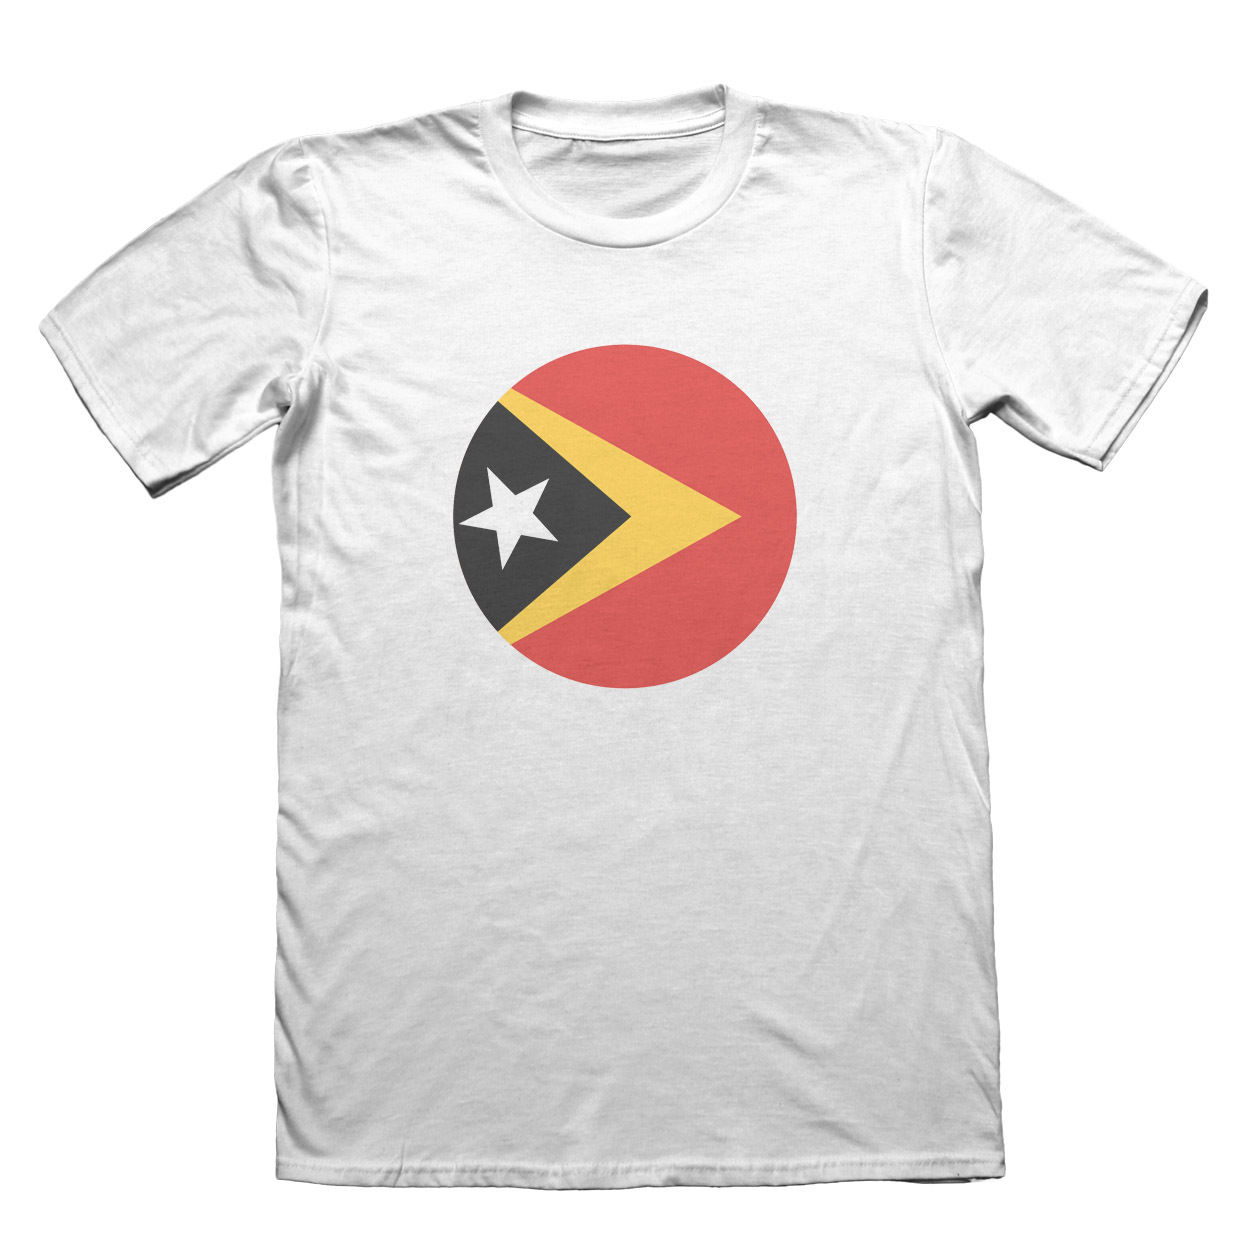 East Timor Flag Design T-Shirt - Mens Fathers Day Christmas #9108